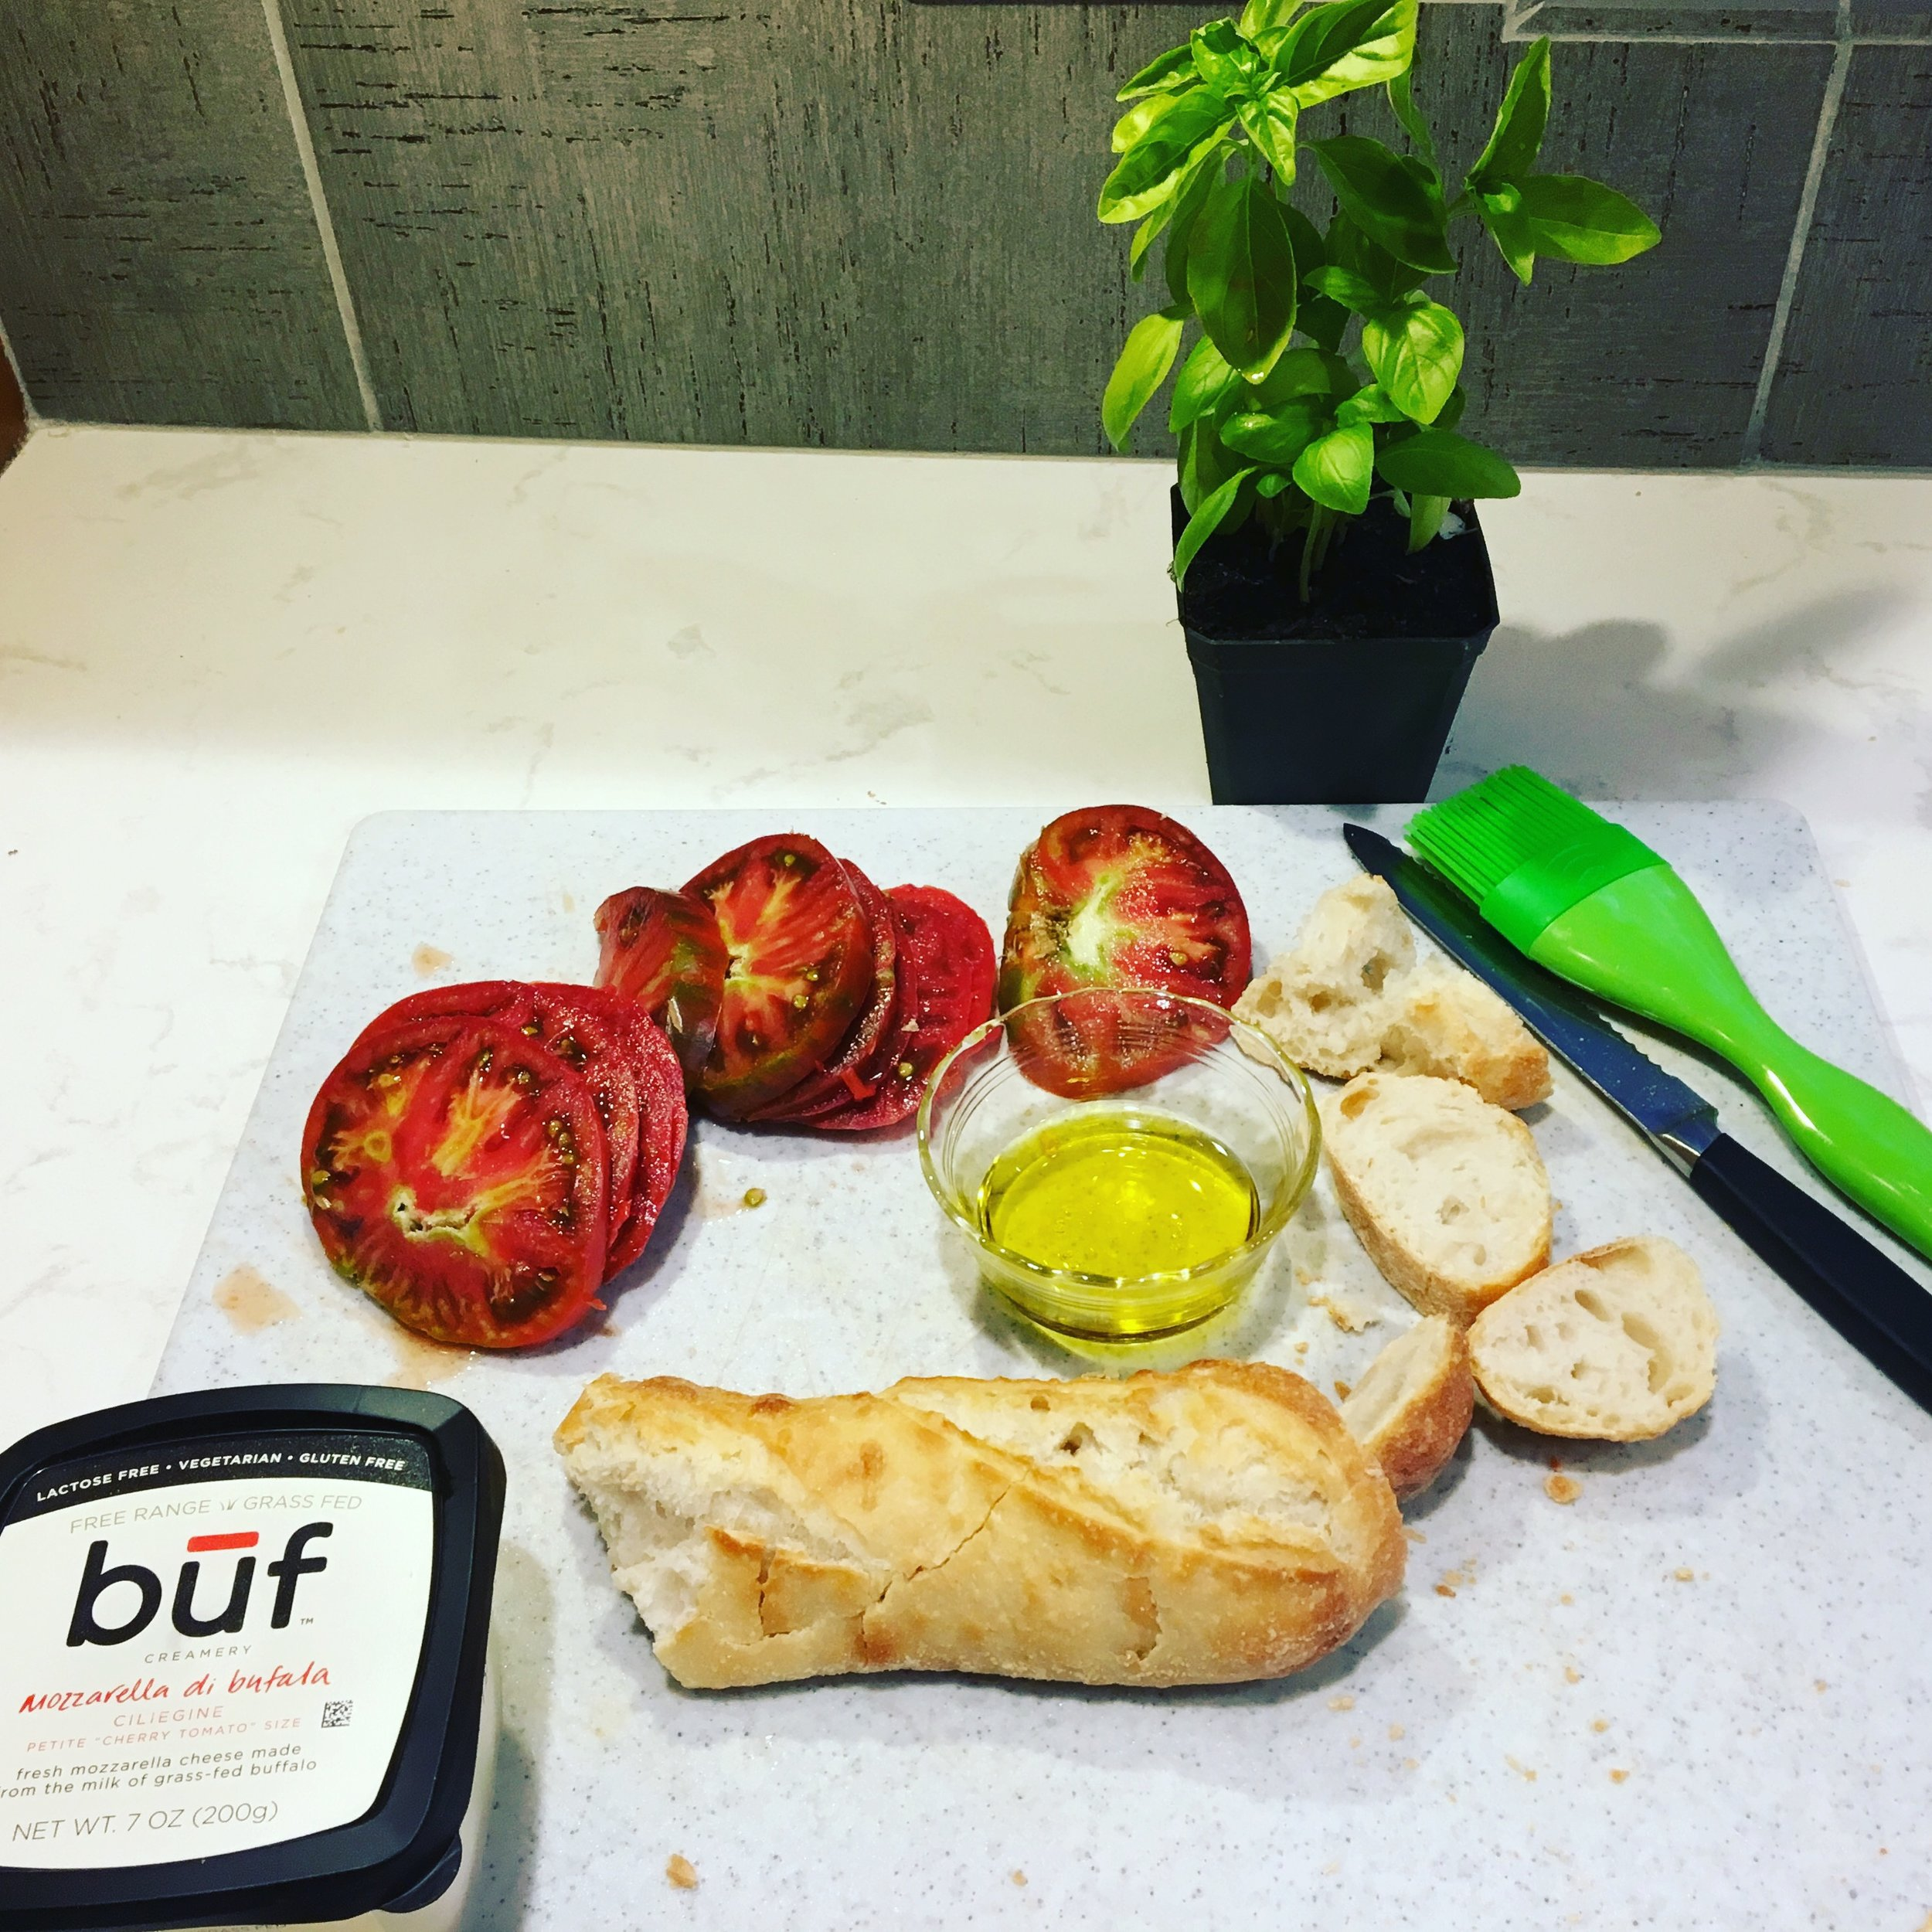 Everything here is organic.The tomatoes are local from Upper Pond Farm. I tried buf for the first time and I will now only use buf. It's the perfect accompaniment to tomatoes and basil picked fresh from the garden. - -Dawn xox